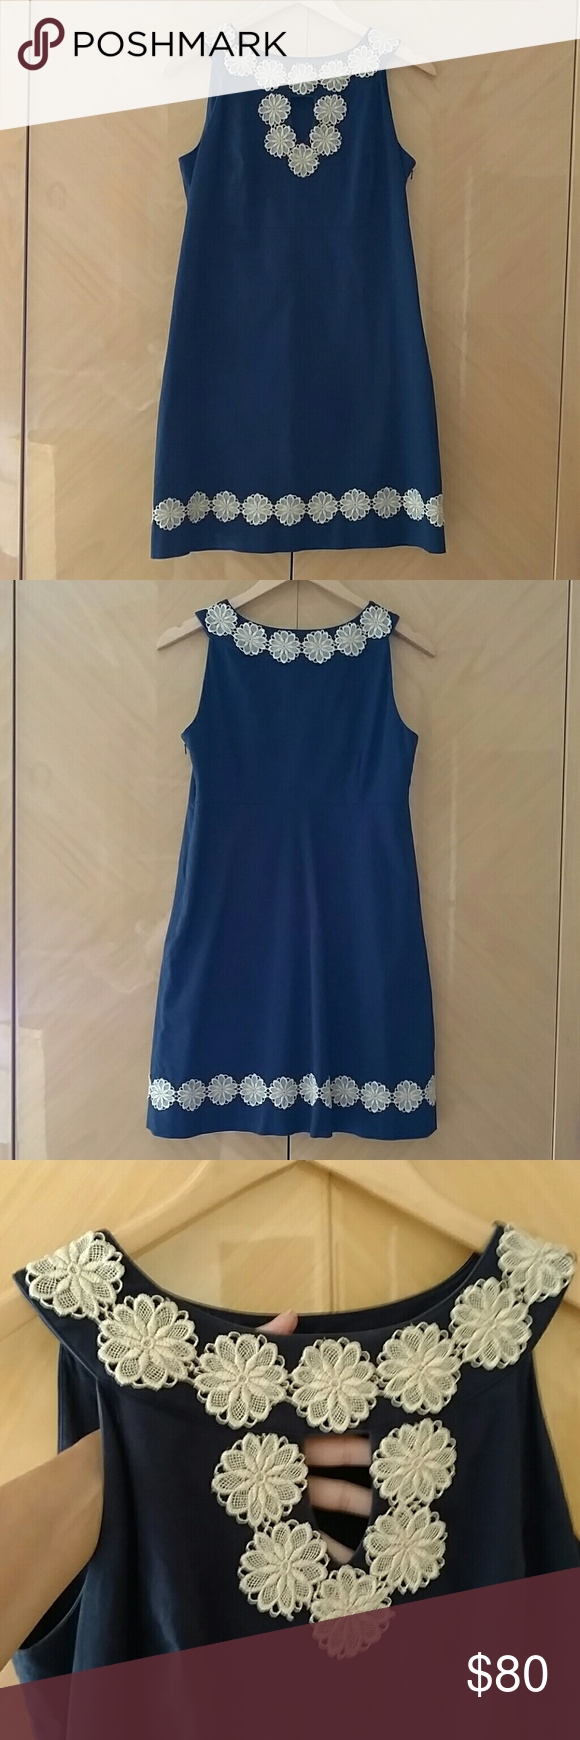 Lilly Pulitzer navy dress 4 Lilly Pulitzer navy dress. Cream flowers crochet details. Front eyelet. Side zipper. Worn once. Size 4. Price is FIRM, no offers will be accepted Lilly Pulitzer Dresses Mini